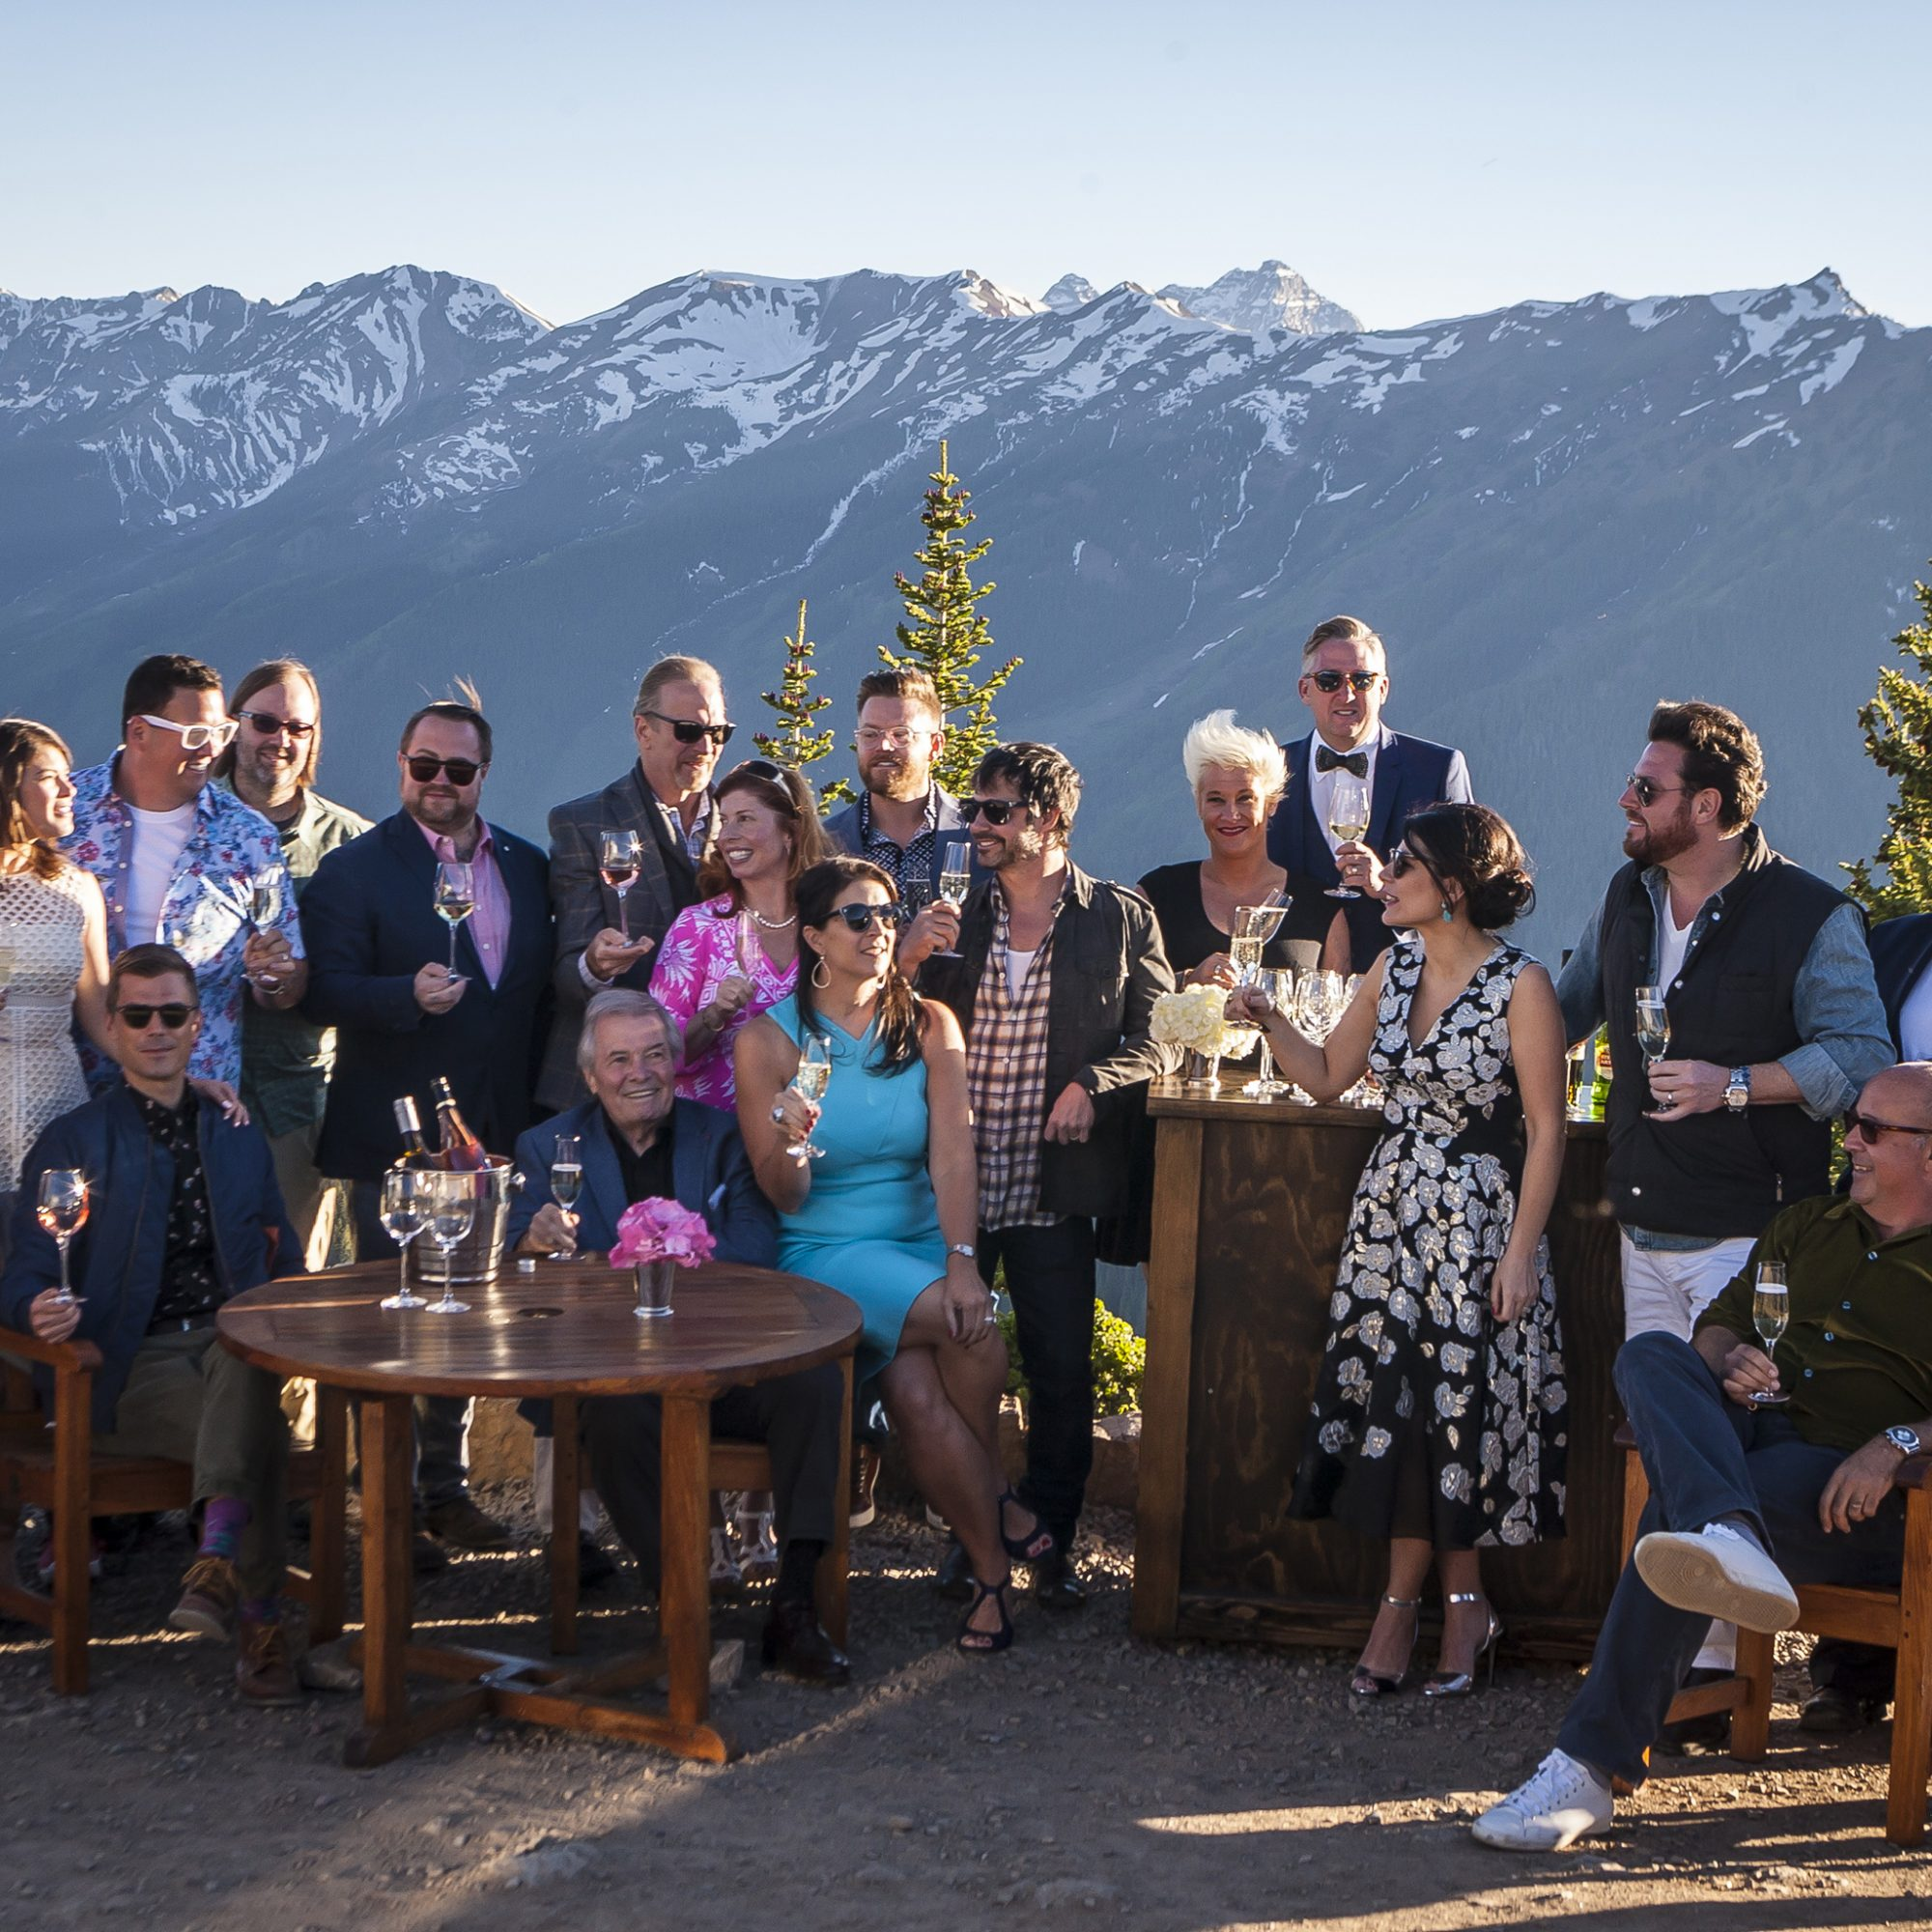 5 Trends Spotted at the Food & Wine Classic in Aspen